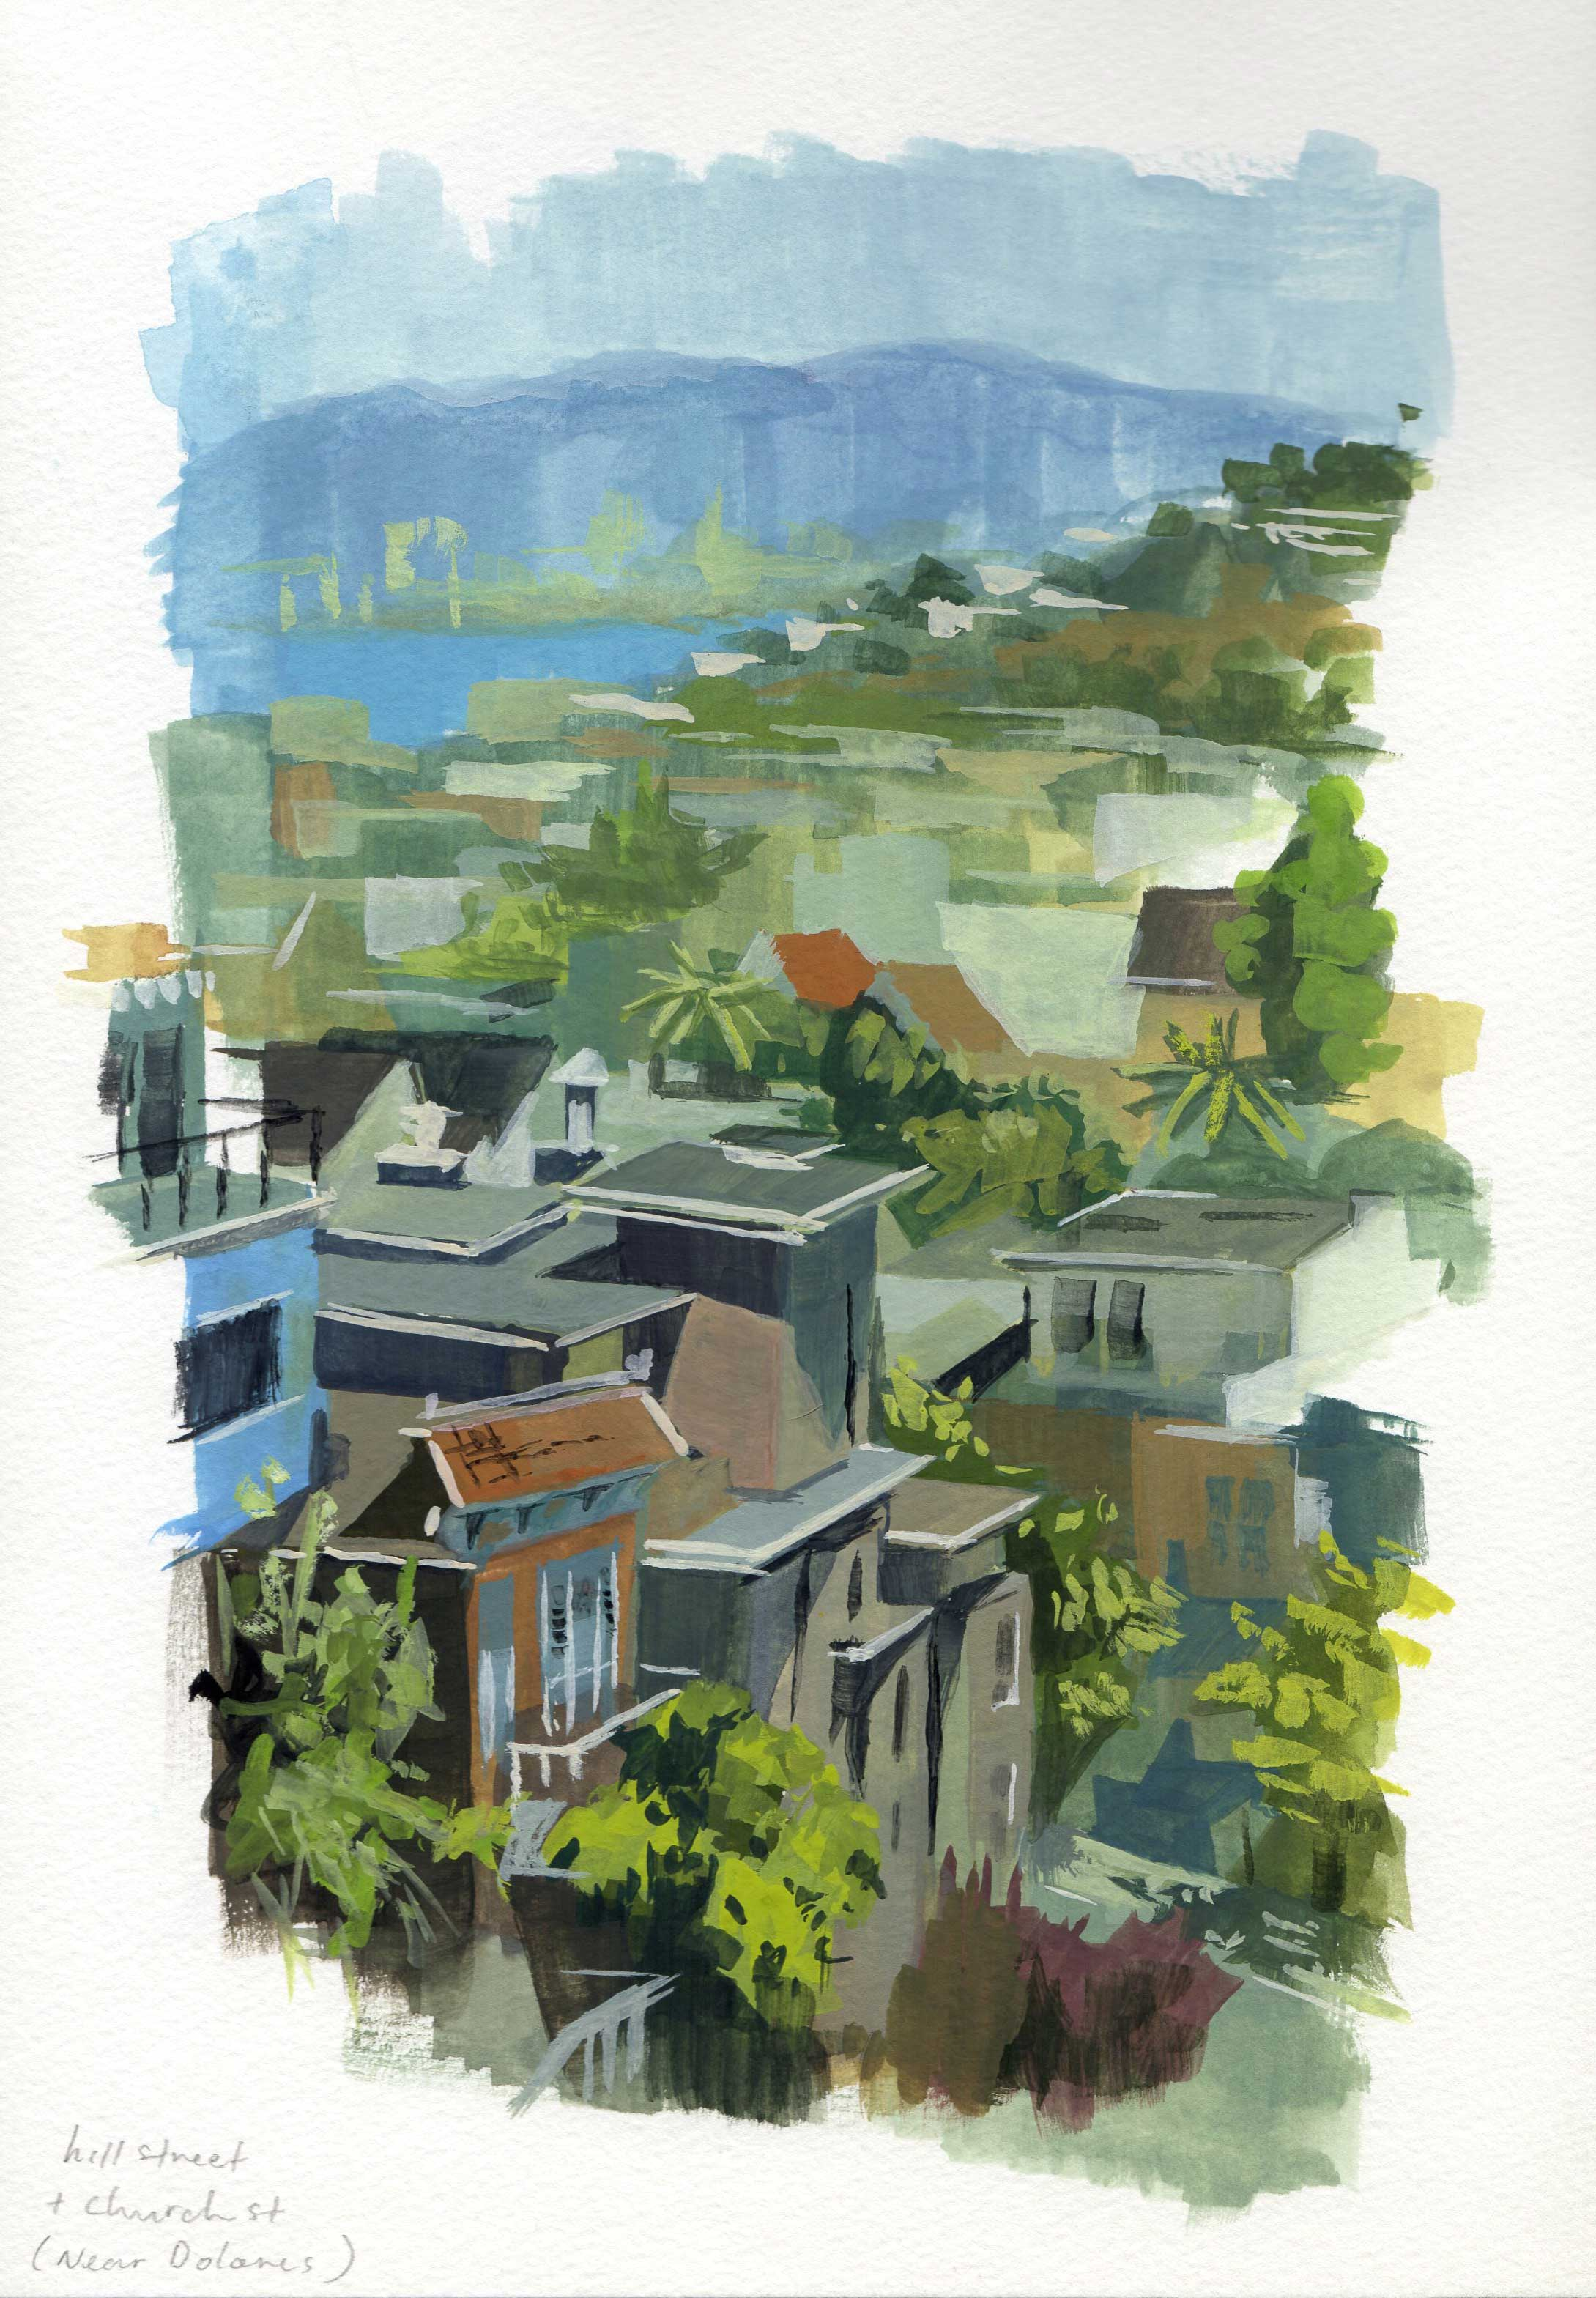 San Francisco, Priscilla Tey, Illustration Art